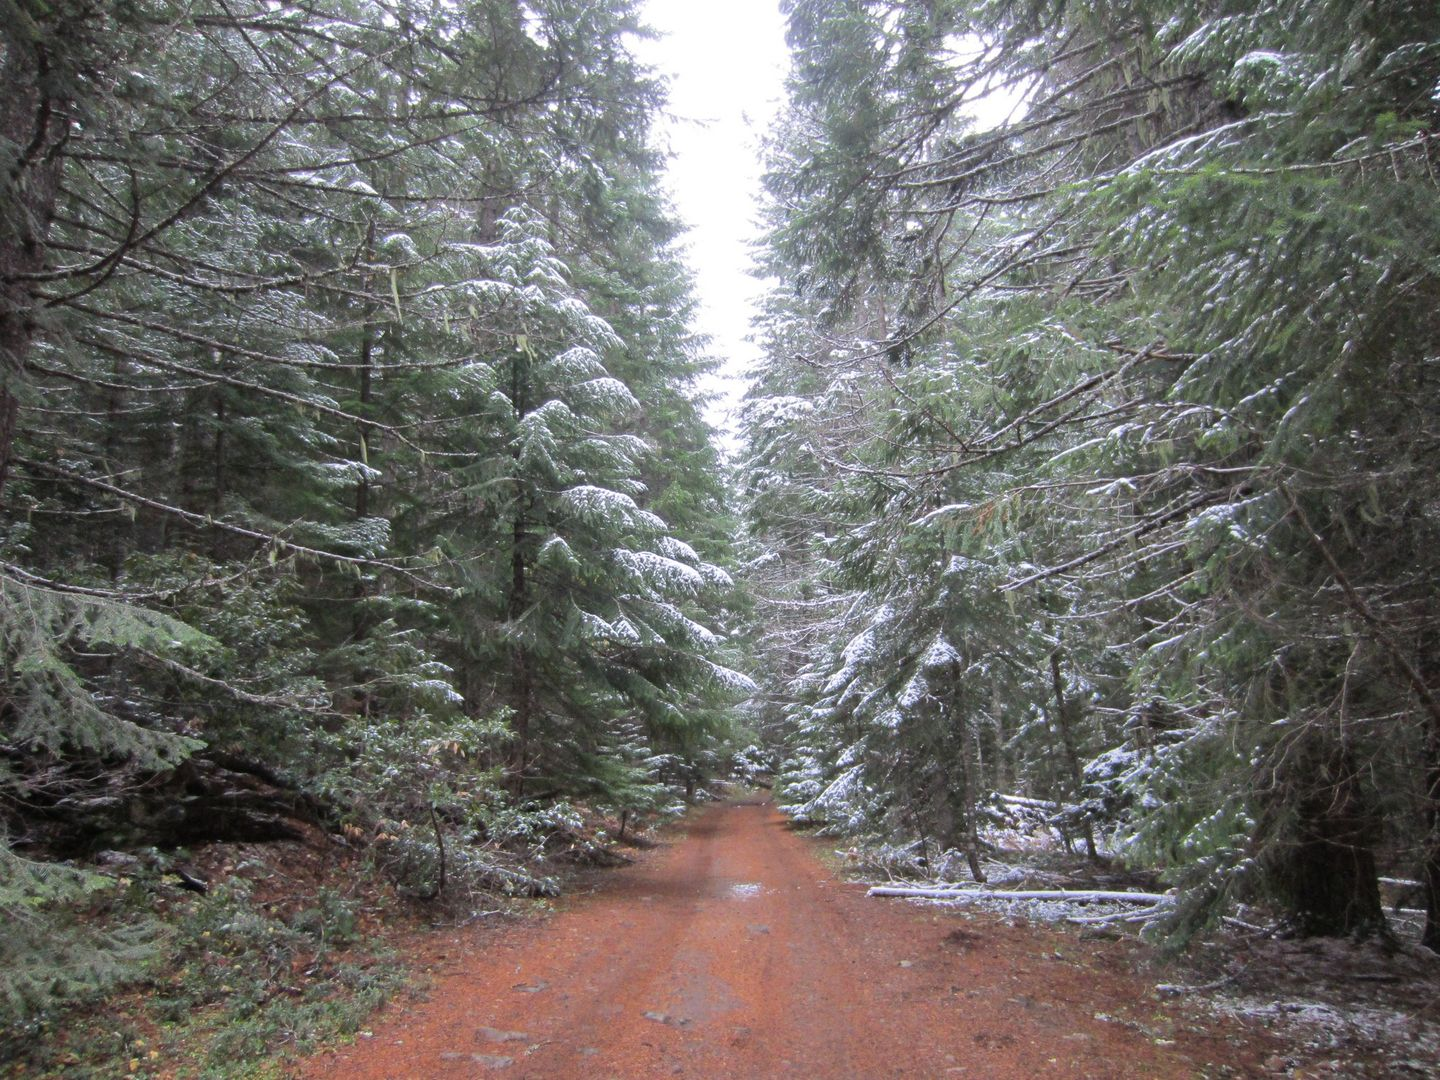 Barlow Trail - Waypoint 41: Continue Straight